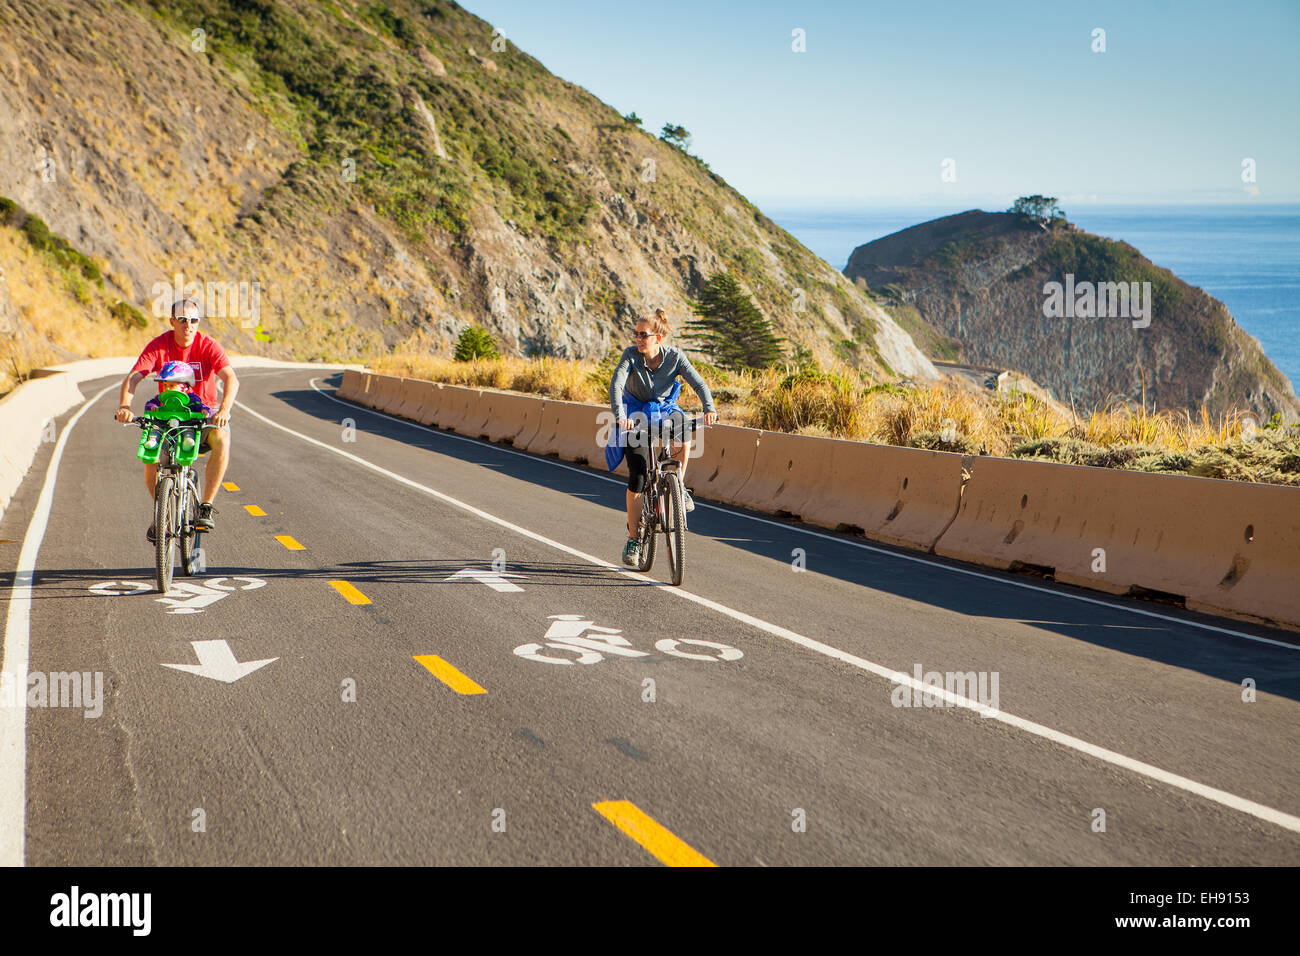 family bicycling Devil's Slide Coastal Trail, near Half Moon Bay, California - Stock Image